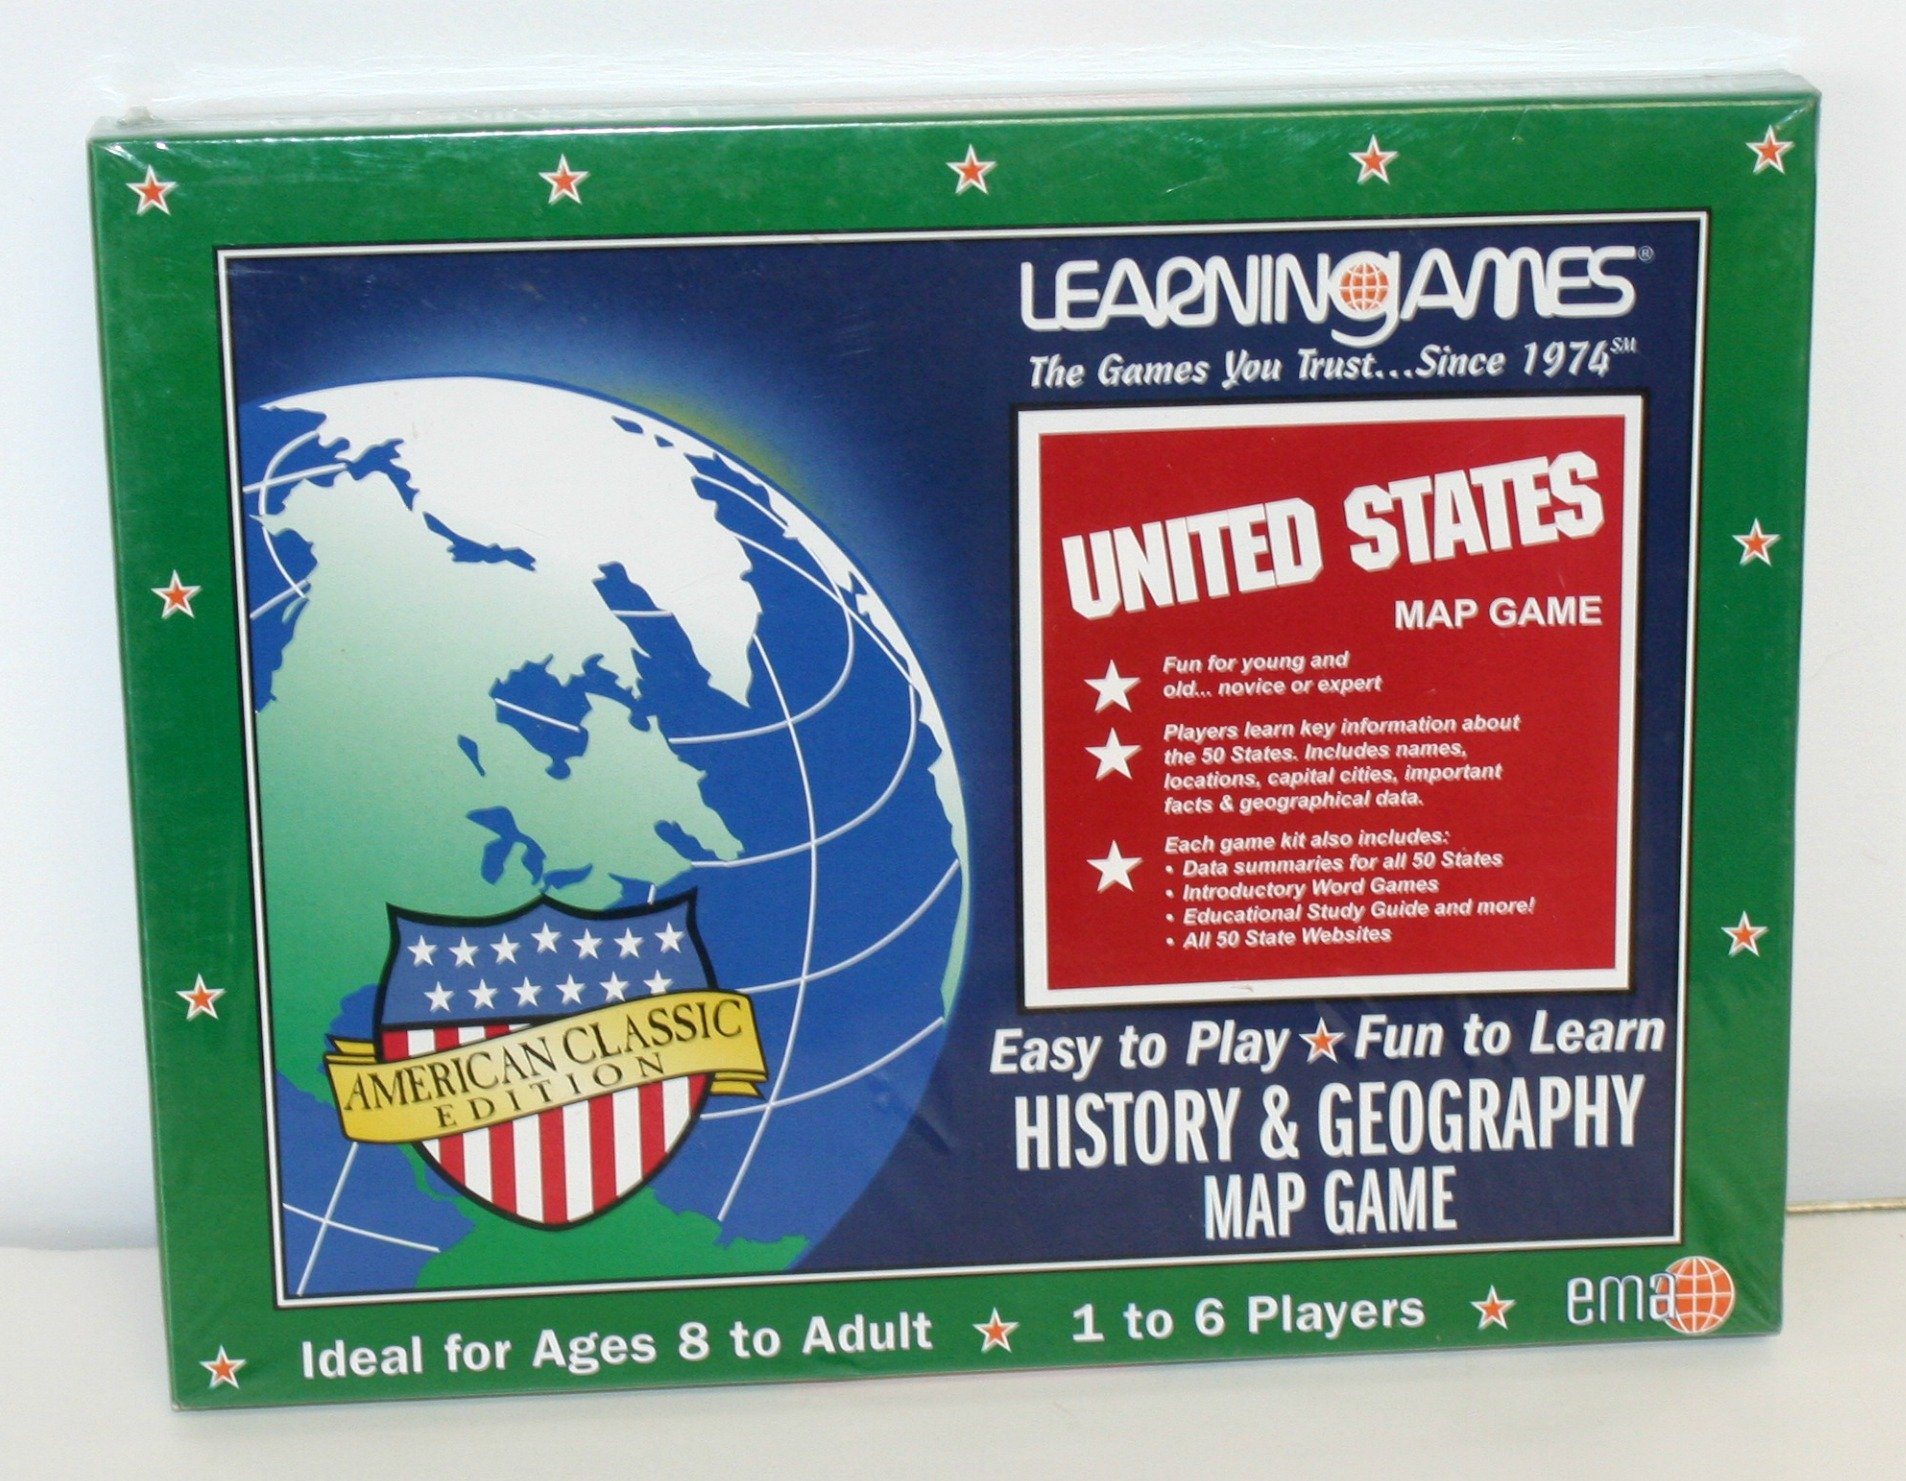 United States Map Game History & Geography American Classic Edition by EMA (Image #1)